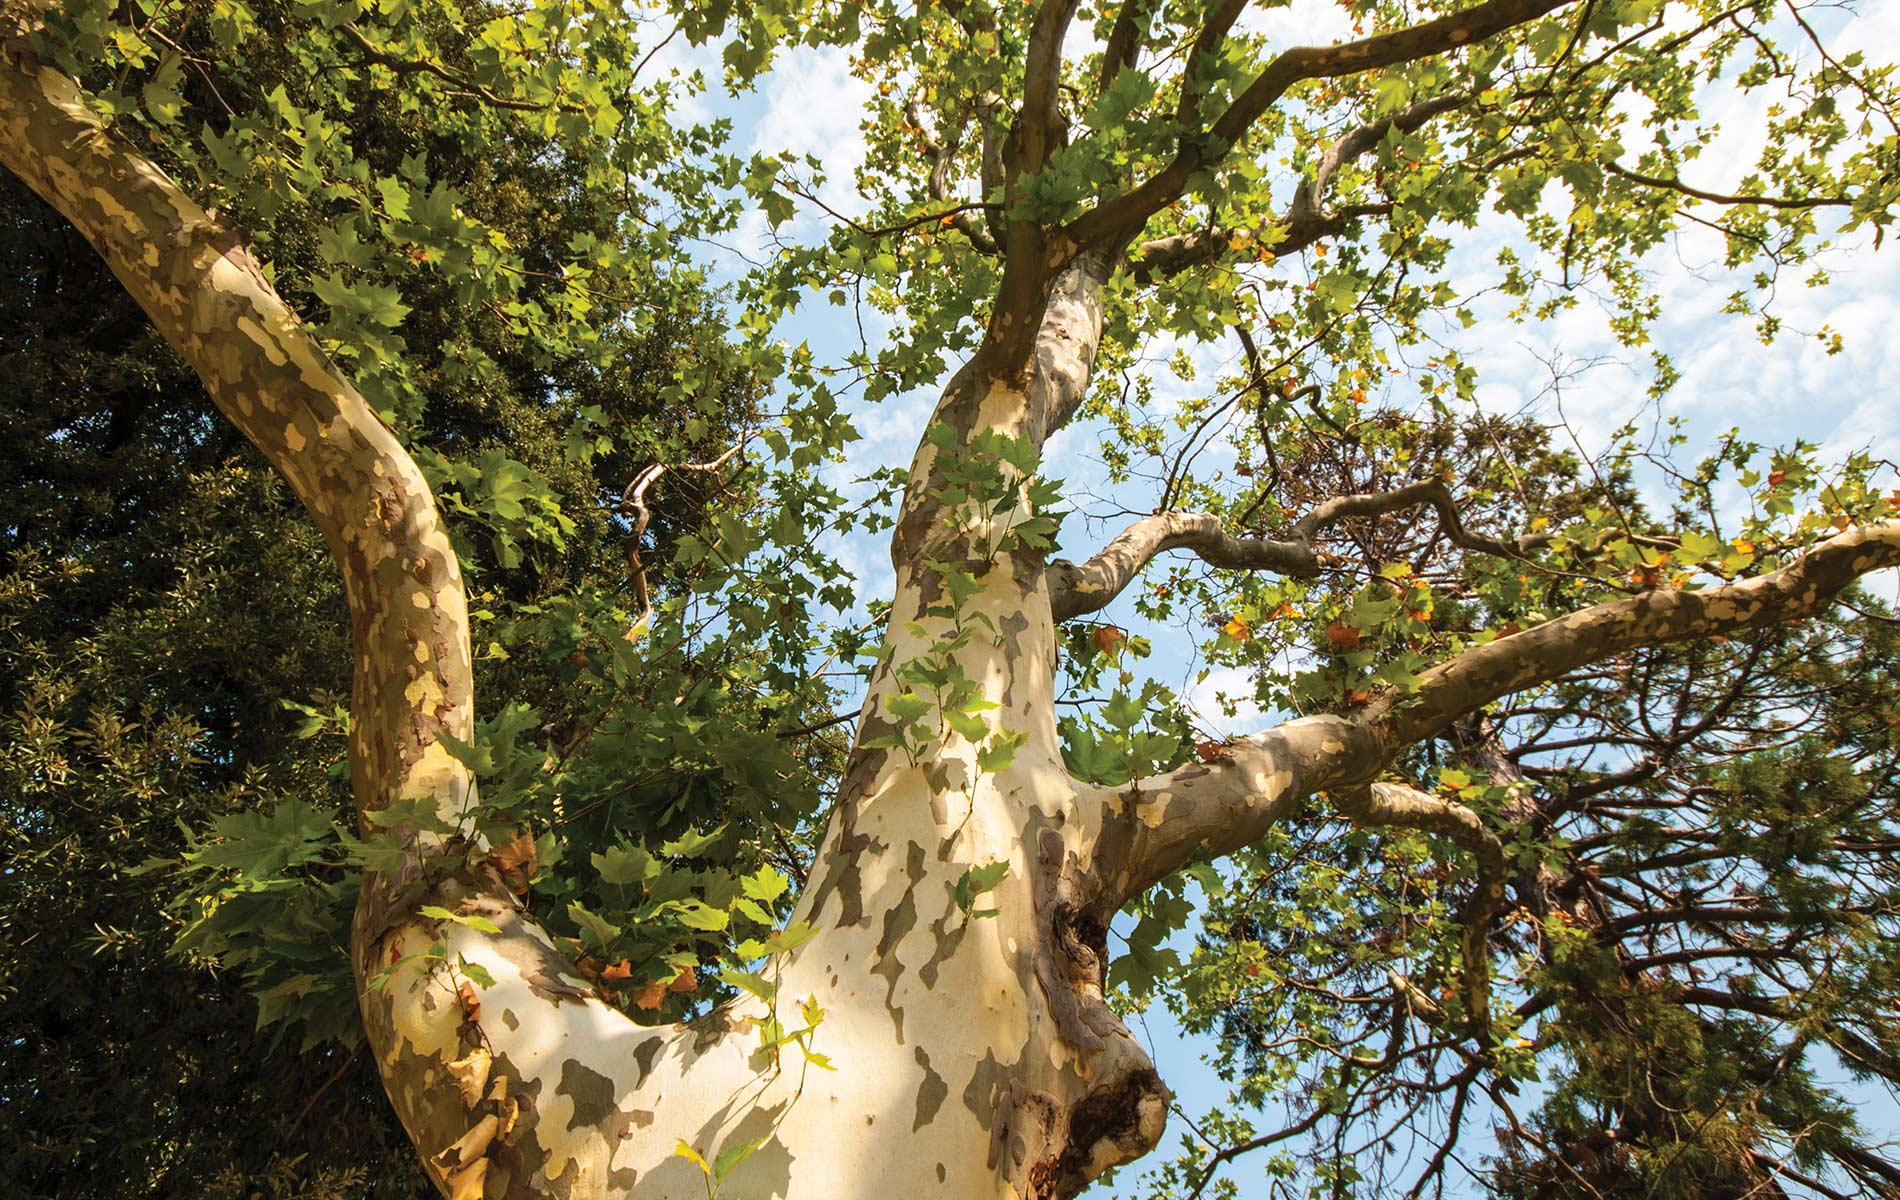 Sycamore tree in the park during sunny, summer season